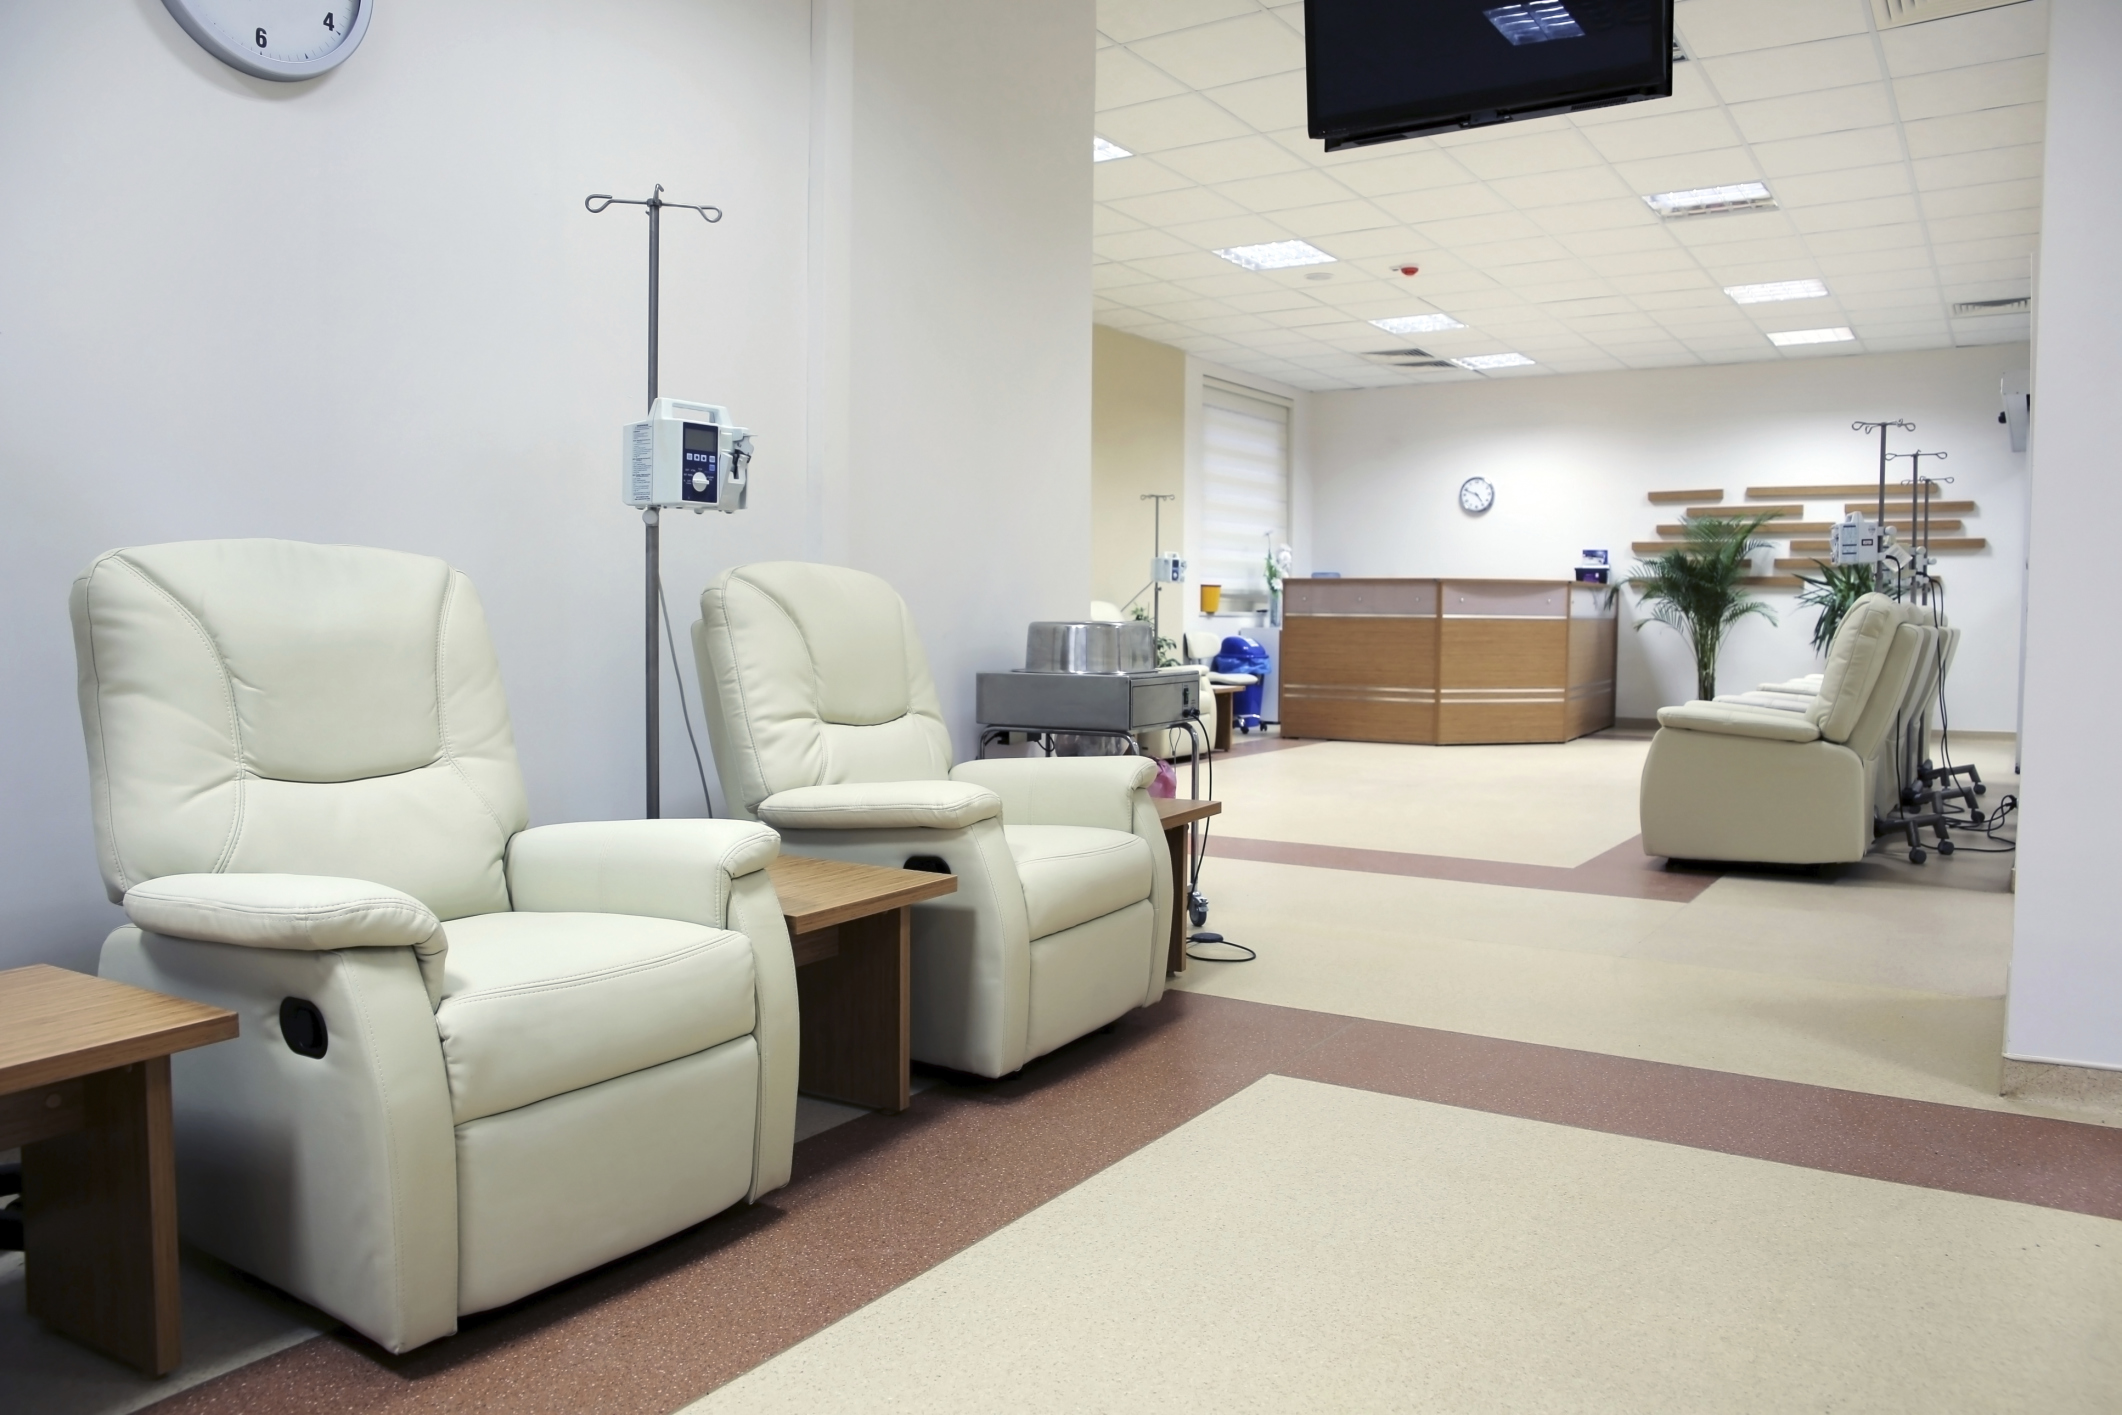 The Disadvantages Of Chemotherapy Healthfully